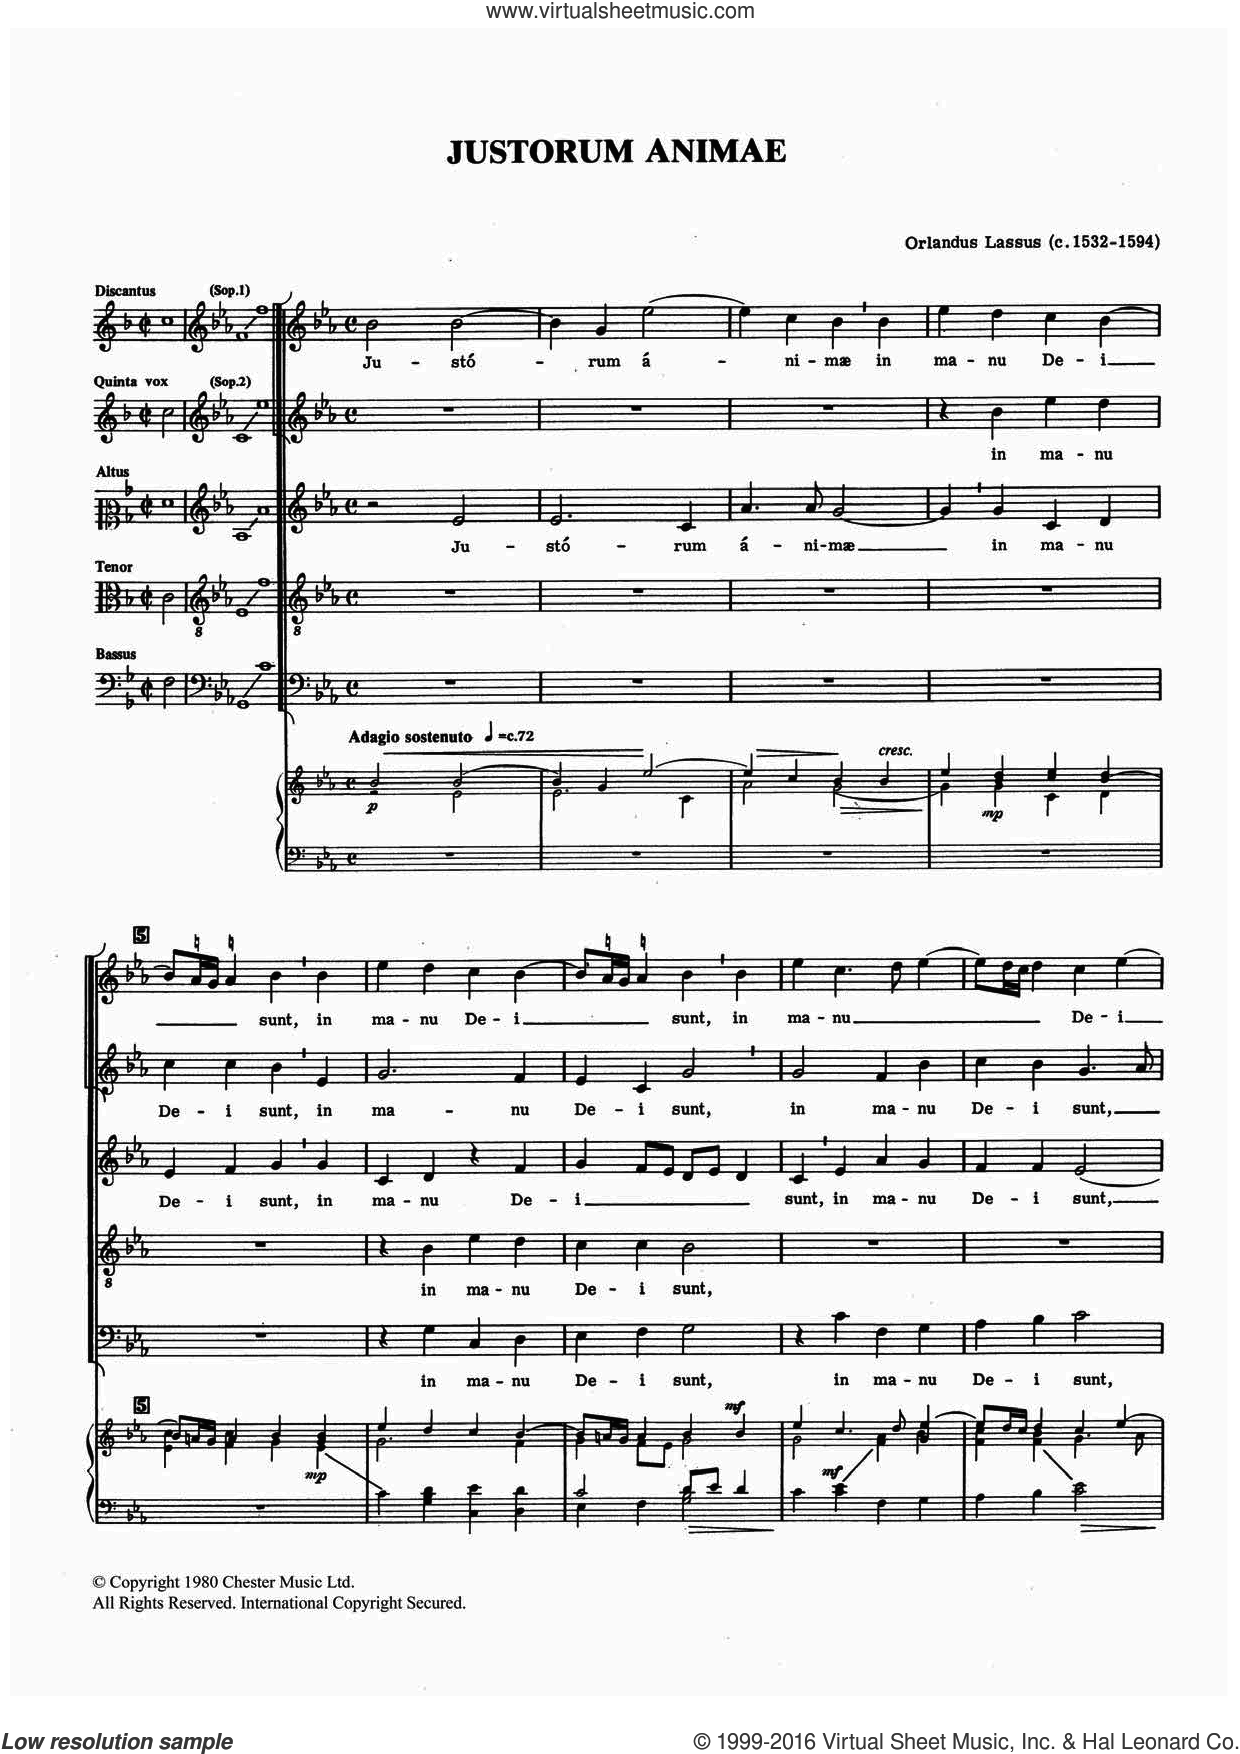 Justorum Animae sheet music for voice, piano or guitar by Orlandus Lassus. Score Image Preview.